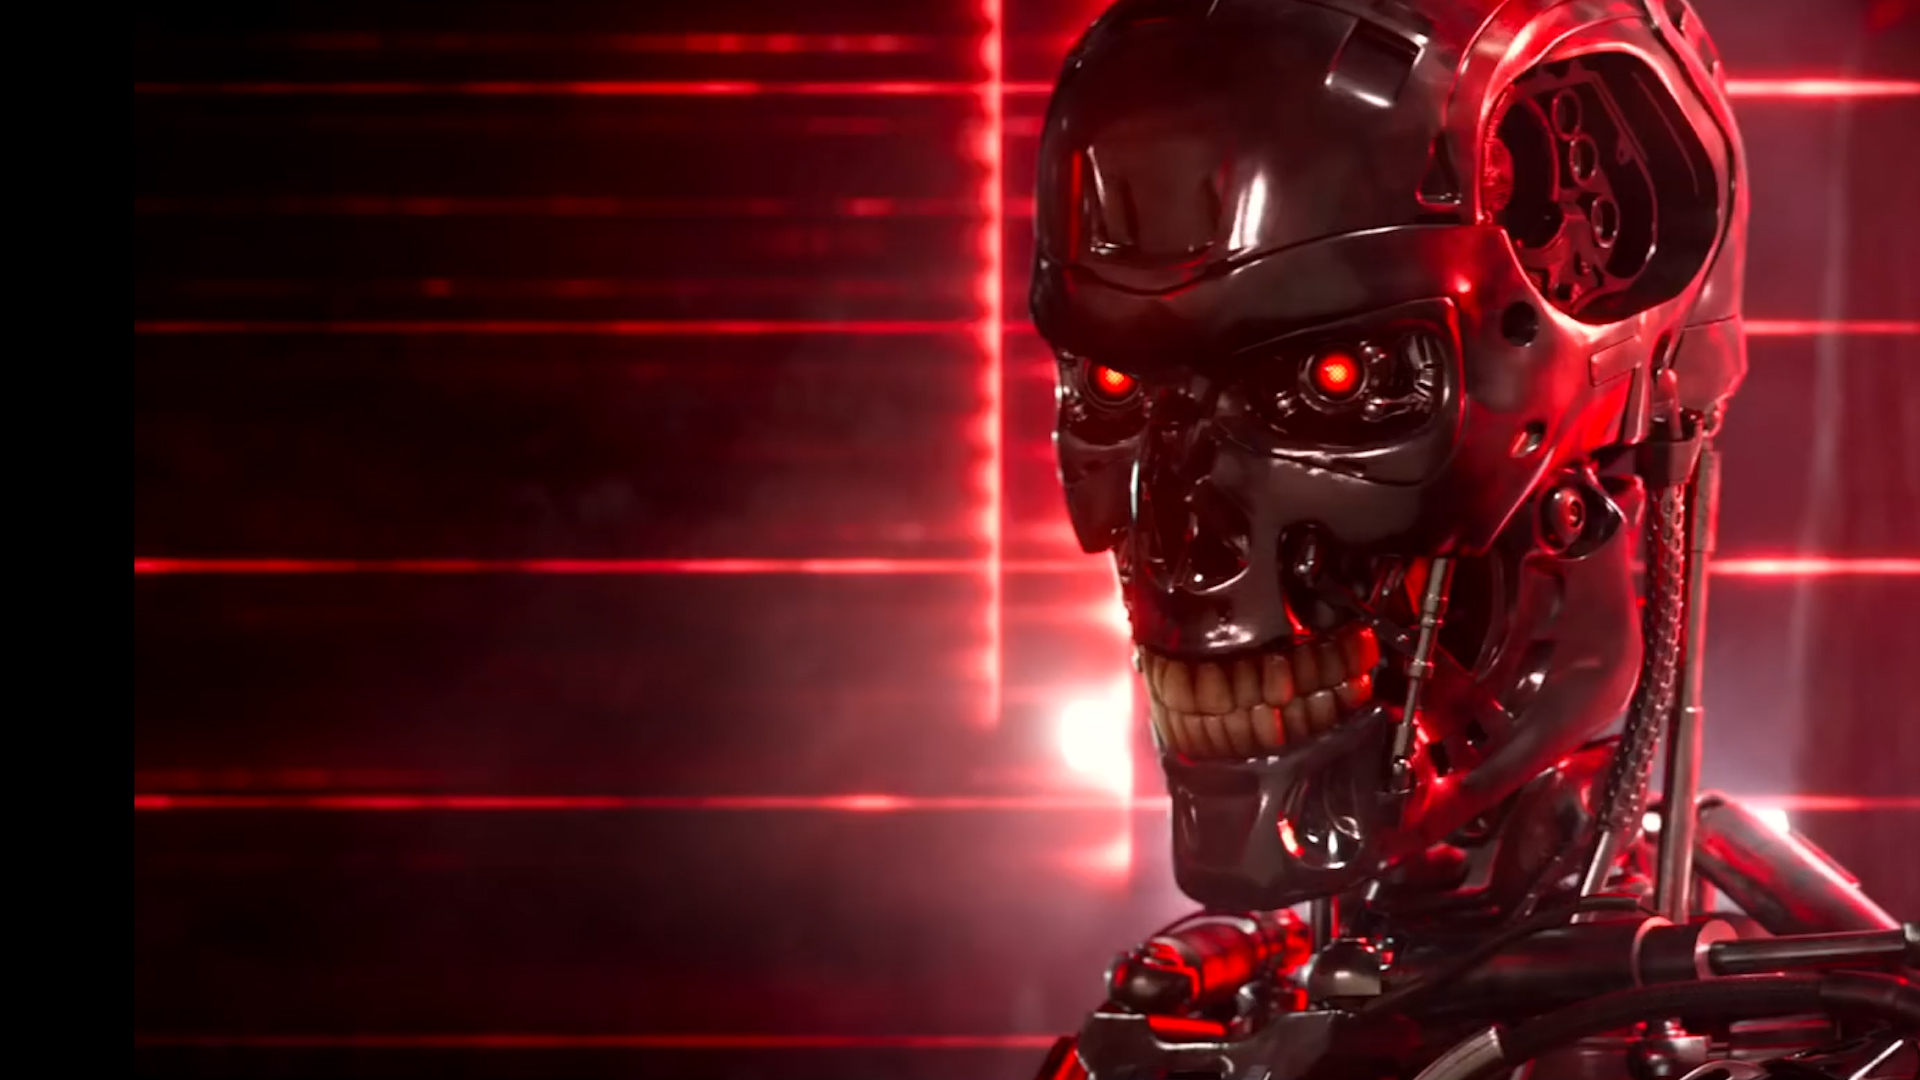 Video: The organisation that wants to stop killer robots